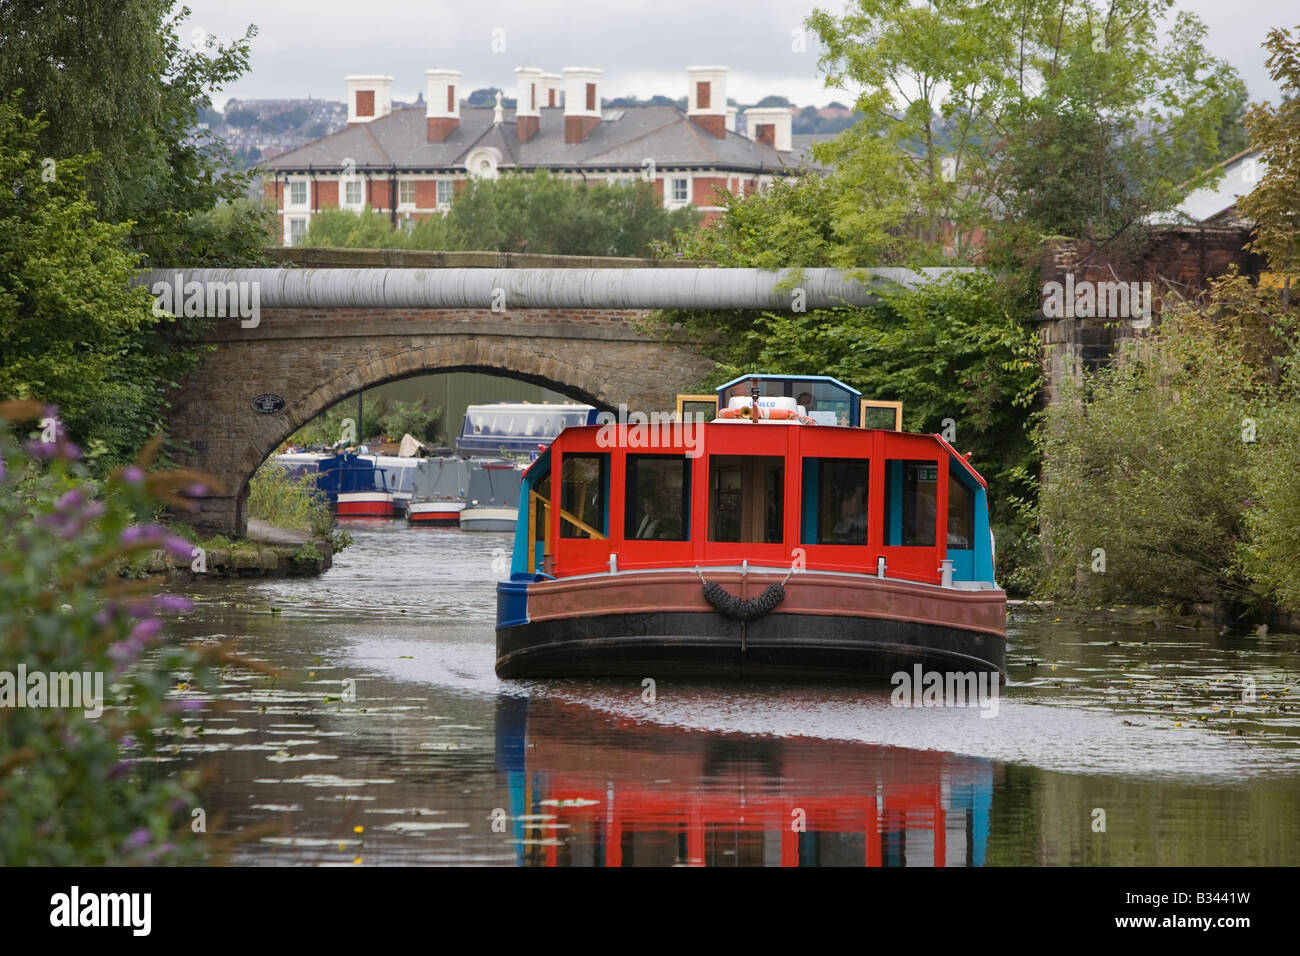 Pleasure boat on the Sheffield and Tinsley Canal - Stock Image